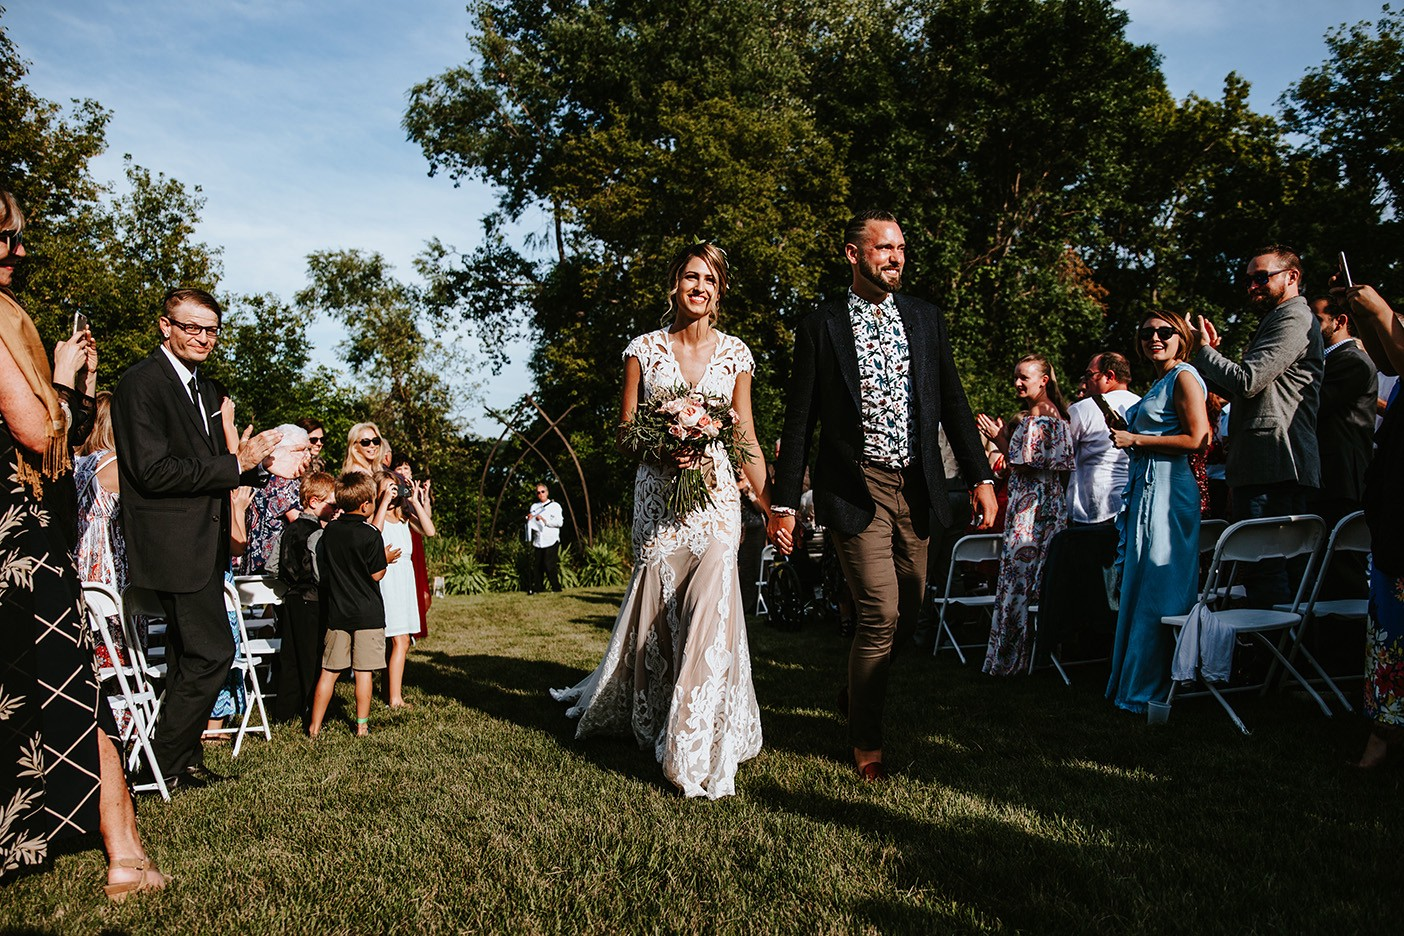 tris and dany walk down the grass aisle